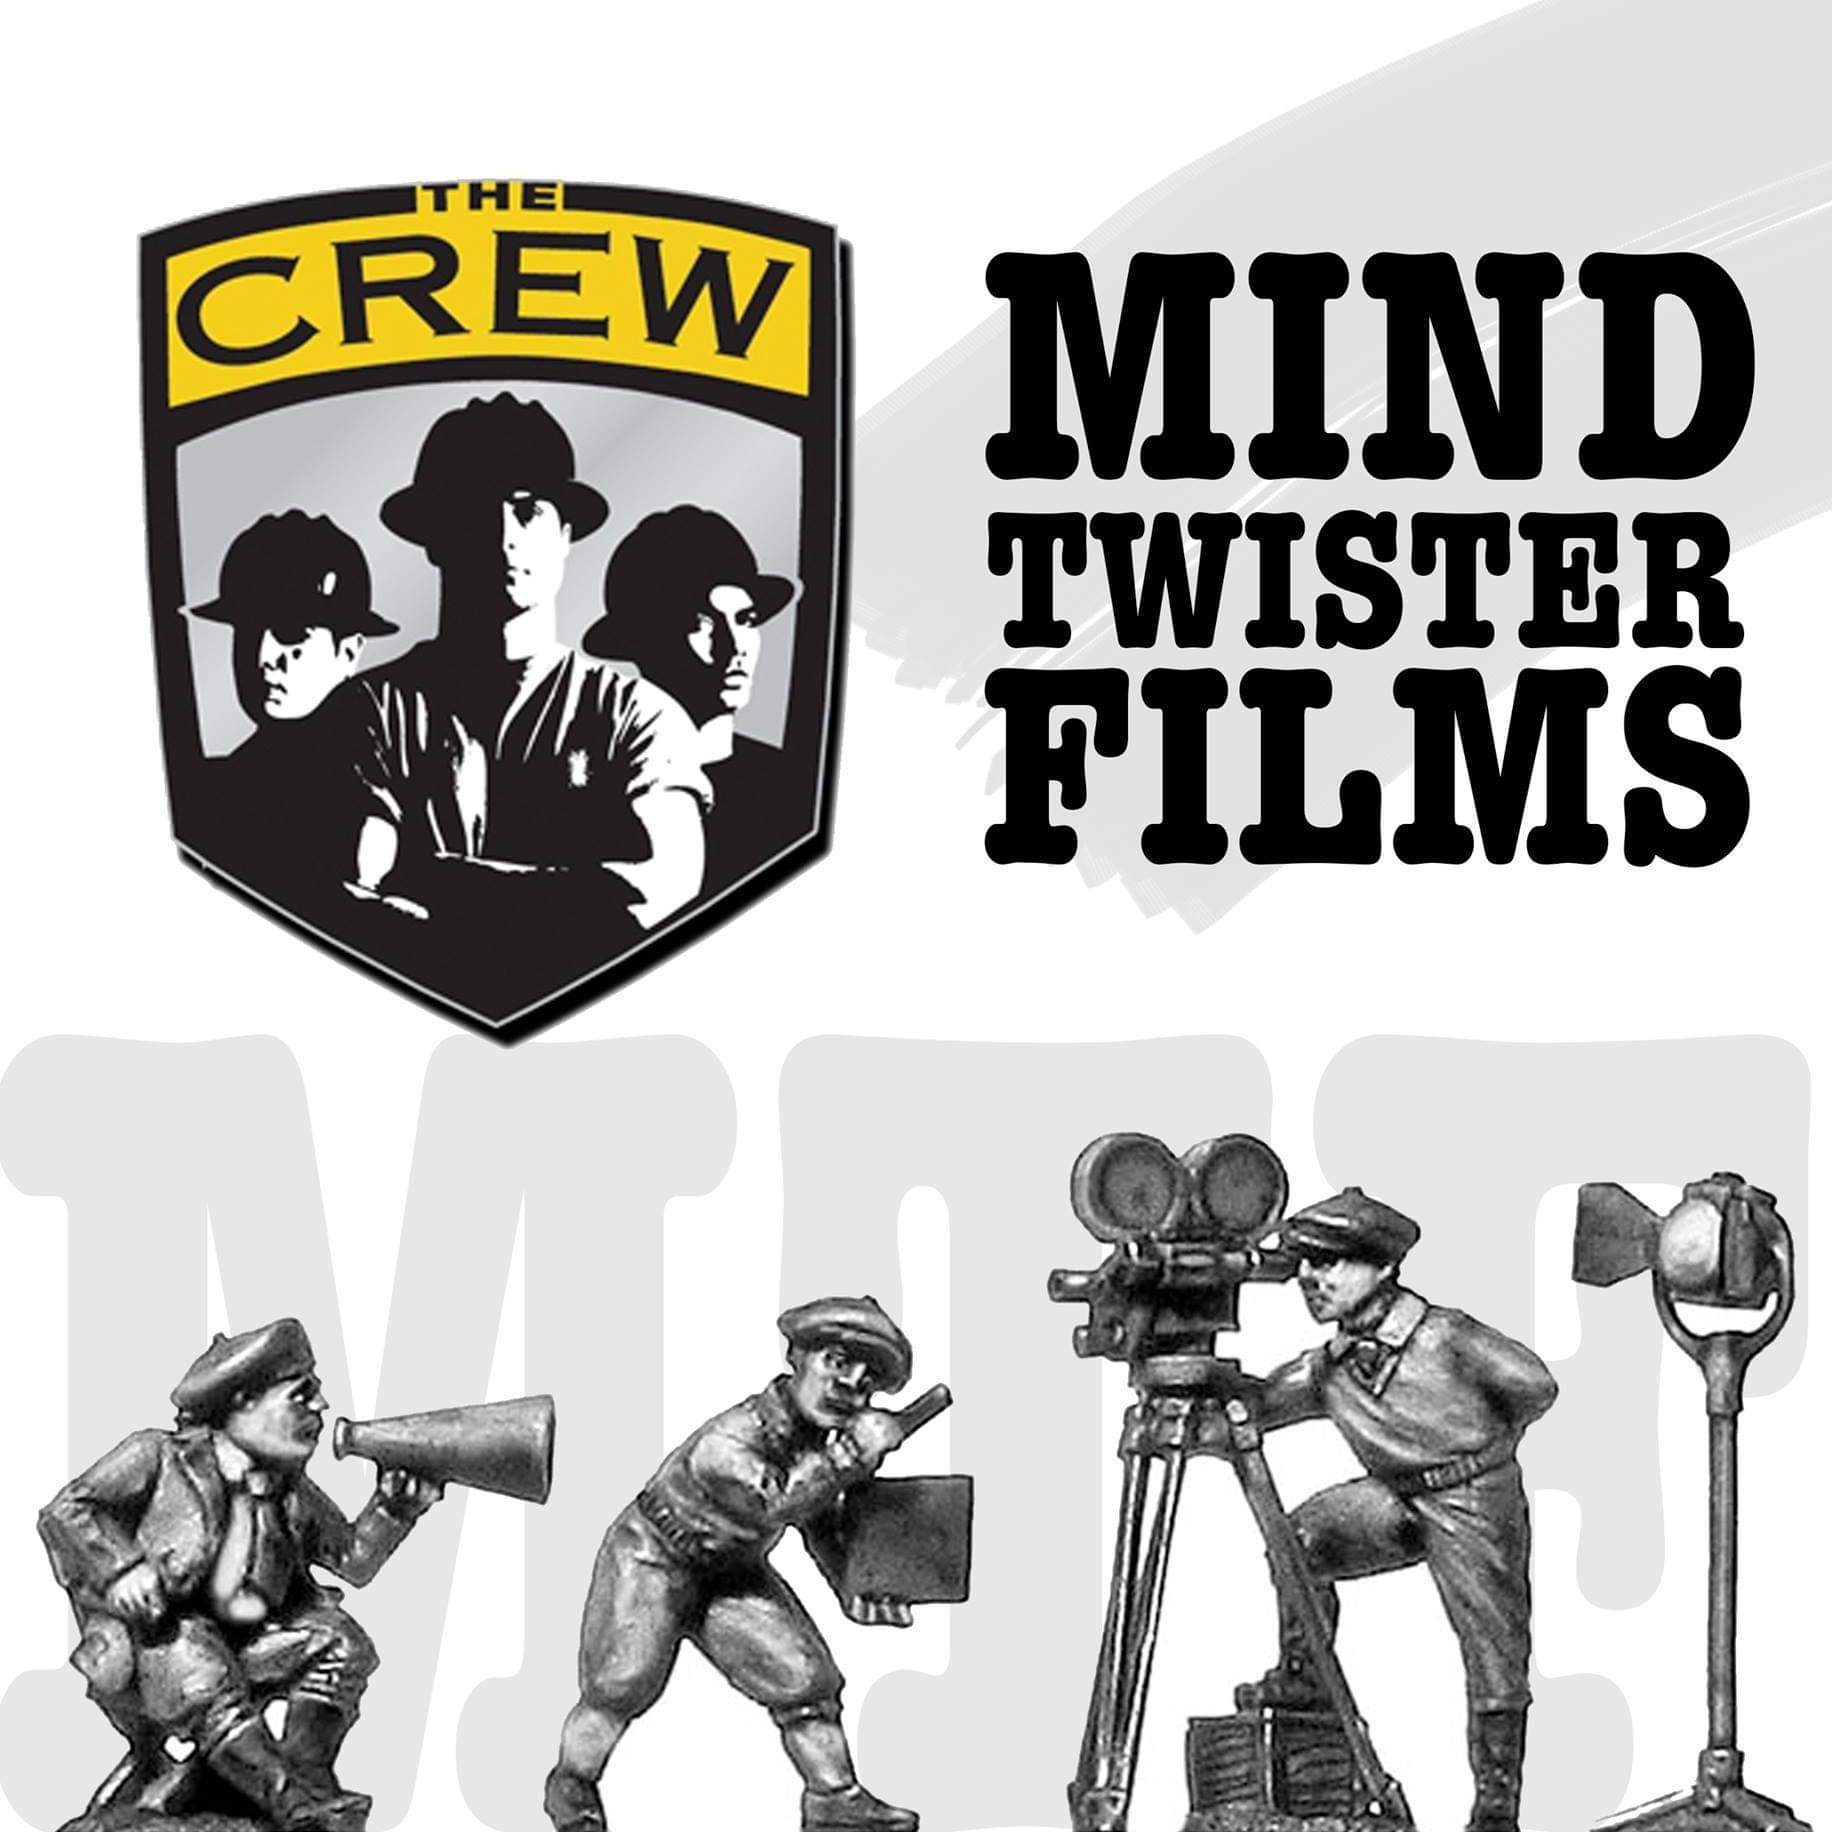 digital-marketing-executive-delhi-Mind-Twister-Films-0years-1years-internship